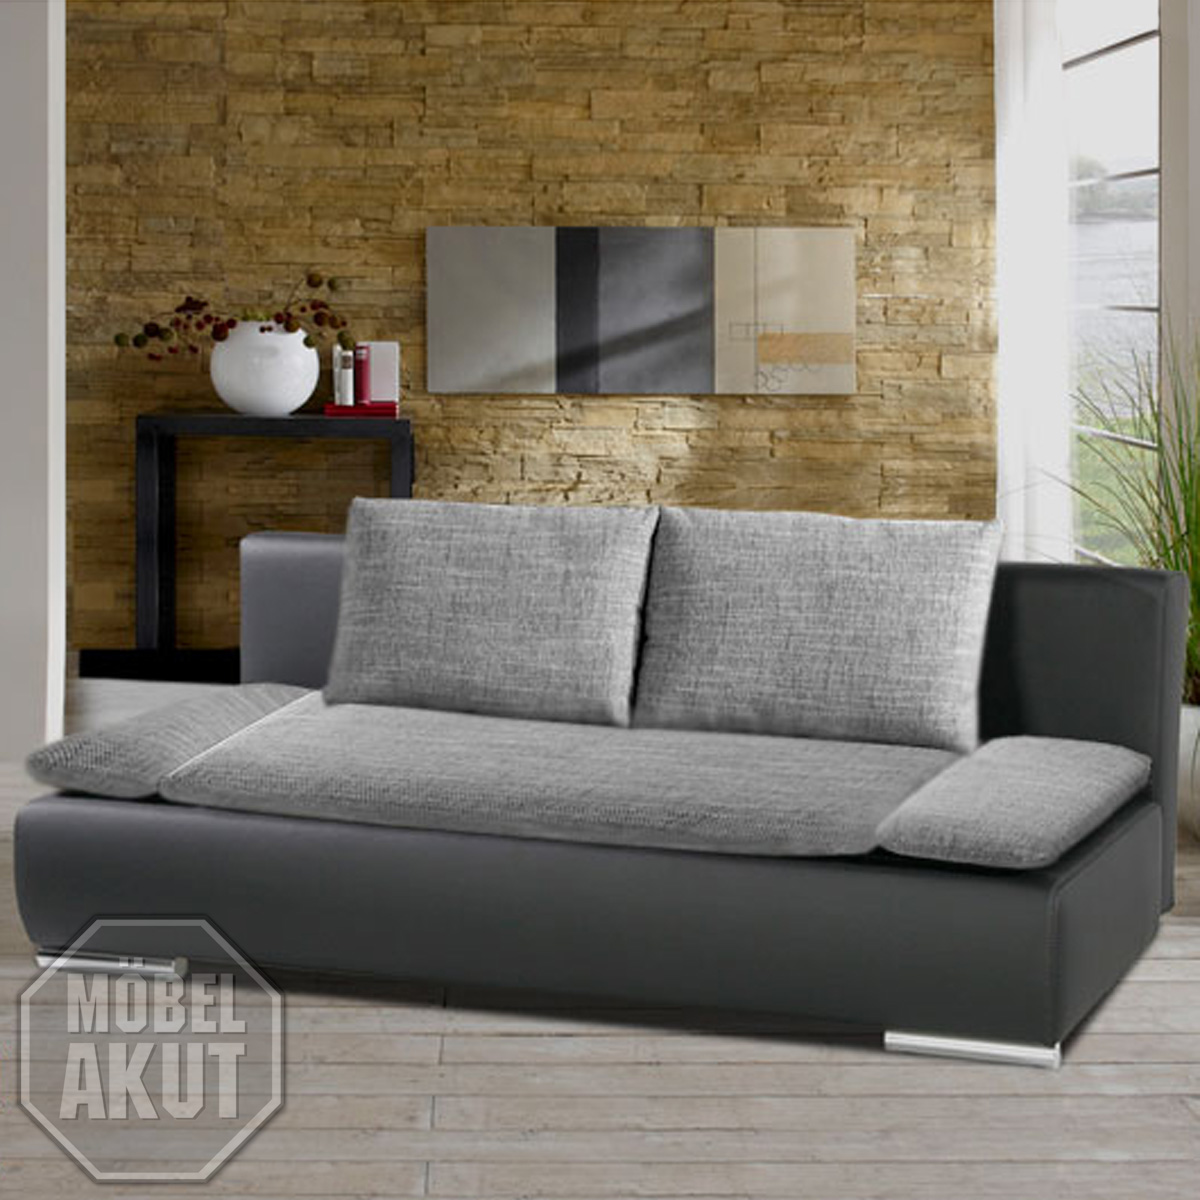 doppel schlafsofa devil sofa funktionssofa in schwarz. Black Bedroom Furniture Sets. Home Design Ideas